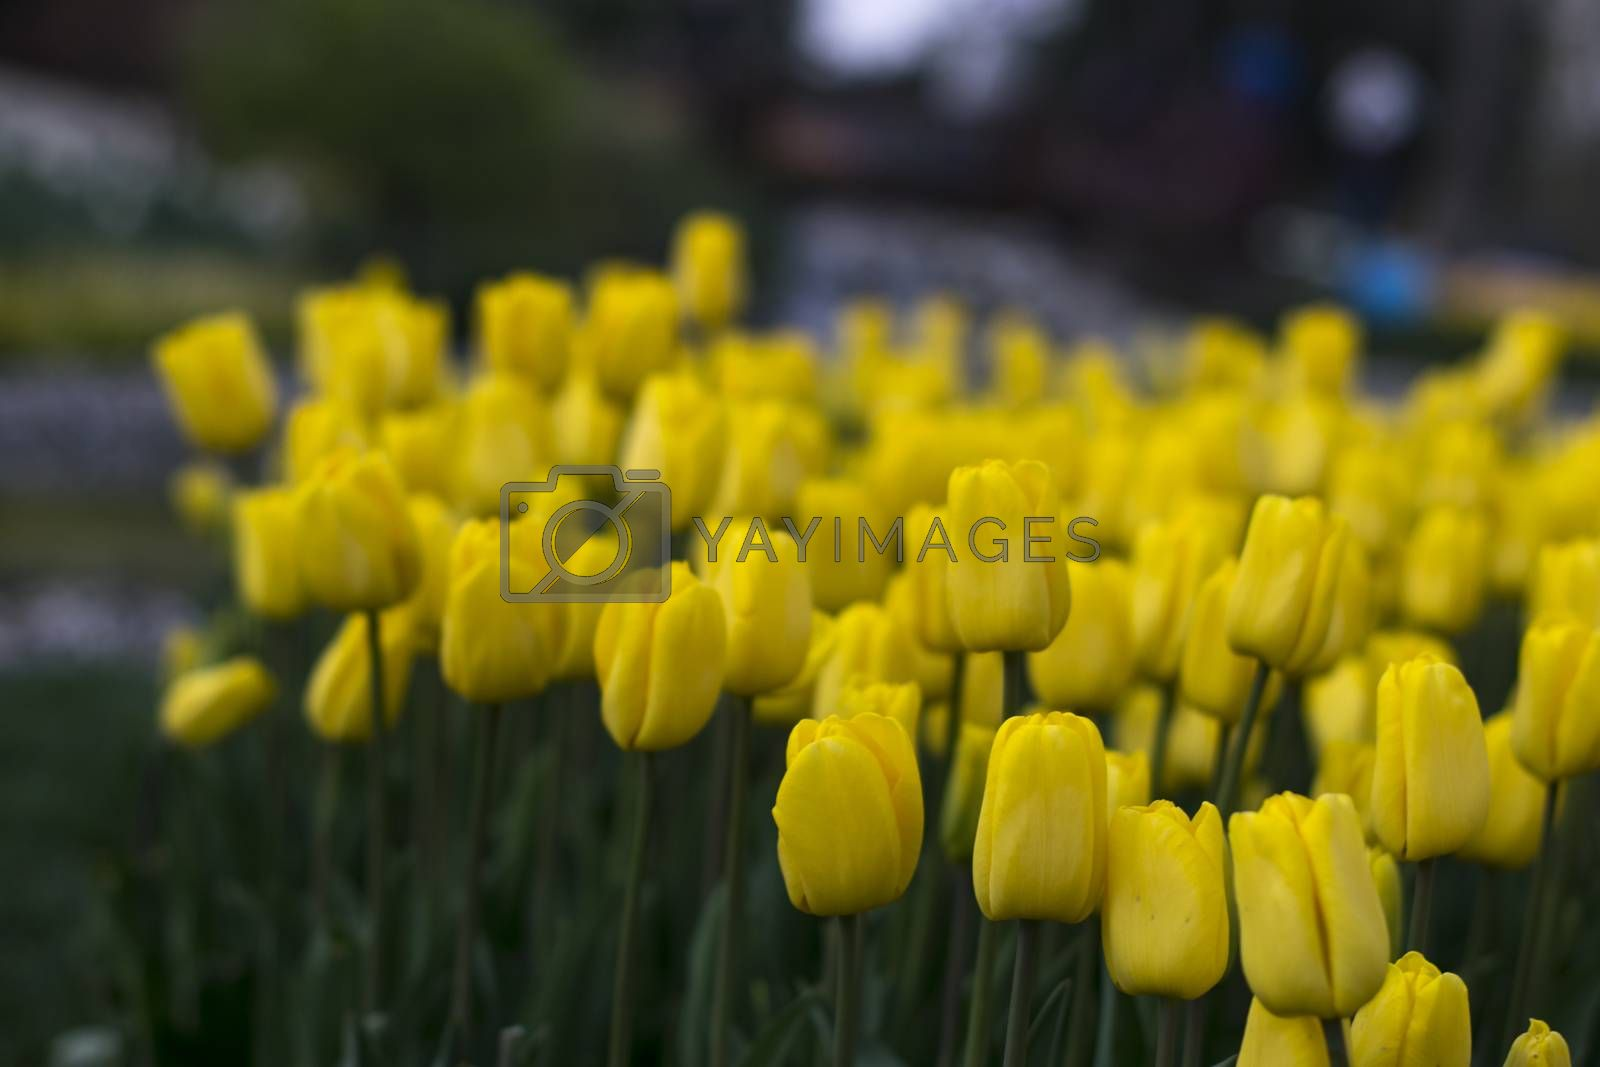 Fields on which bloom yellow tulips. Tulip field. Field with yellow tulips